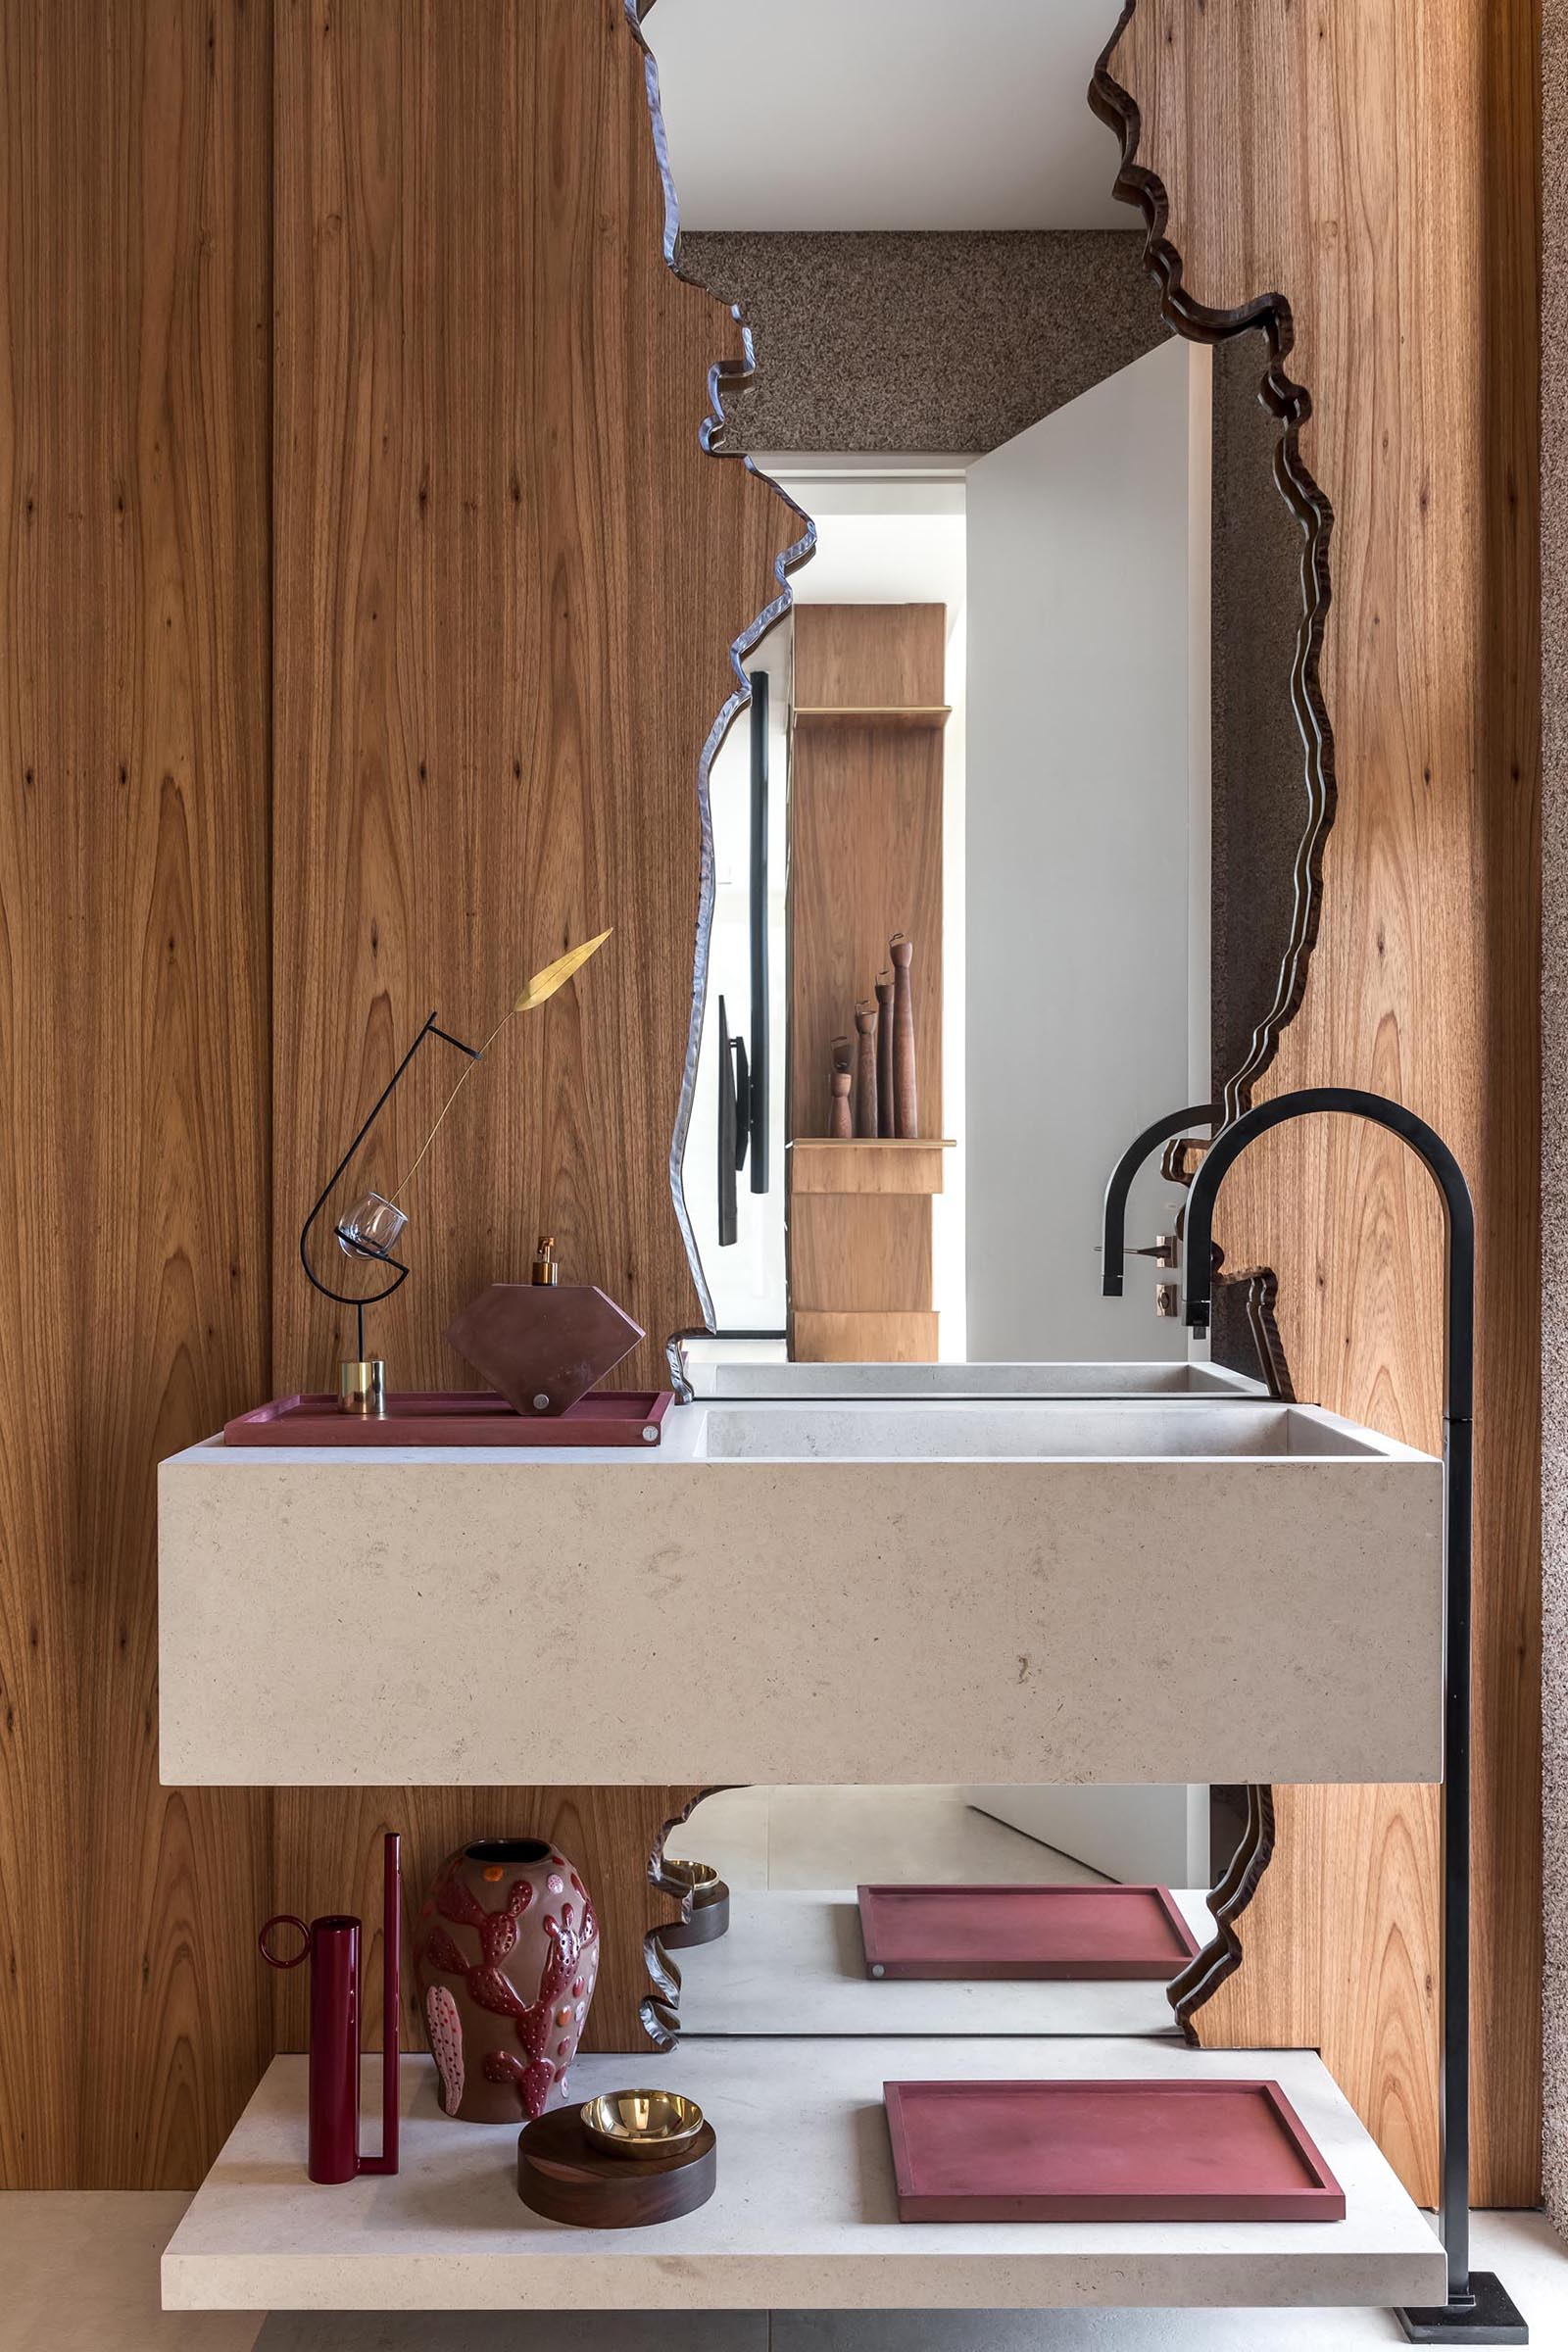 In a powder room, there's a mirror framed by floor-to-ceiling wood.